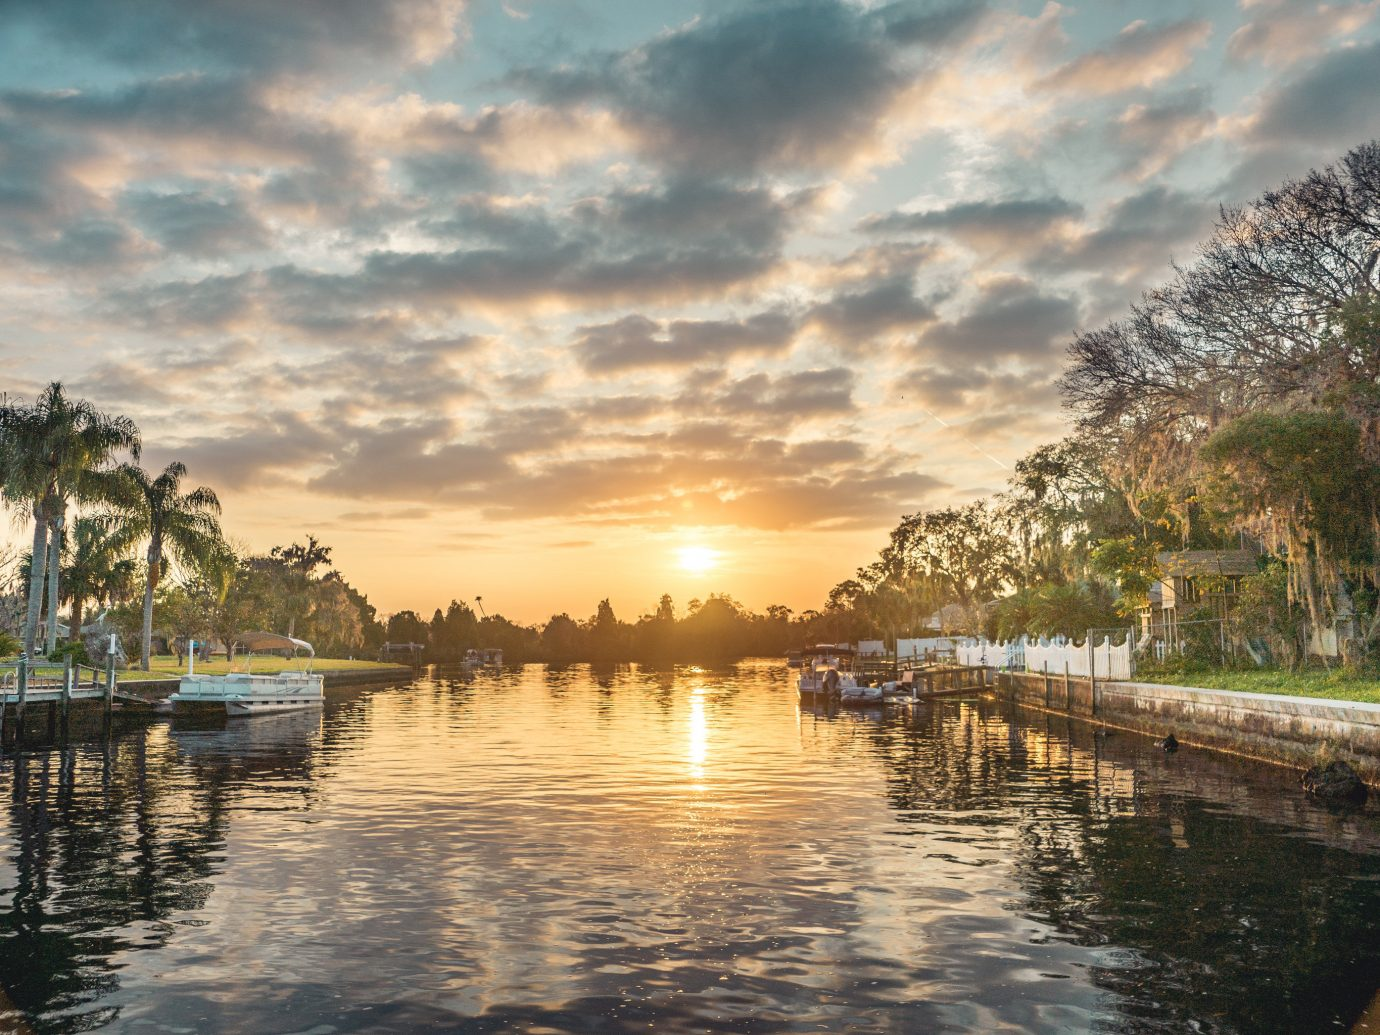 Trip Ideas outdoor water sky River reflection morning Sea evening Sunset dusk Nature waterway bay pond shore clouds several day